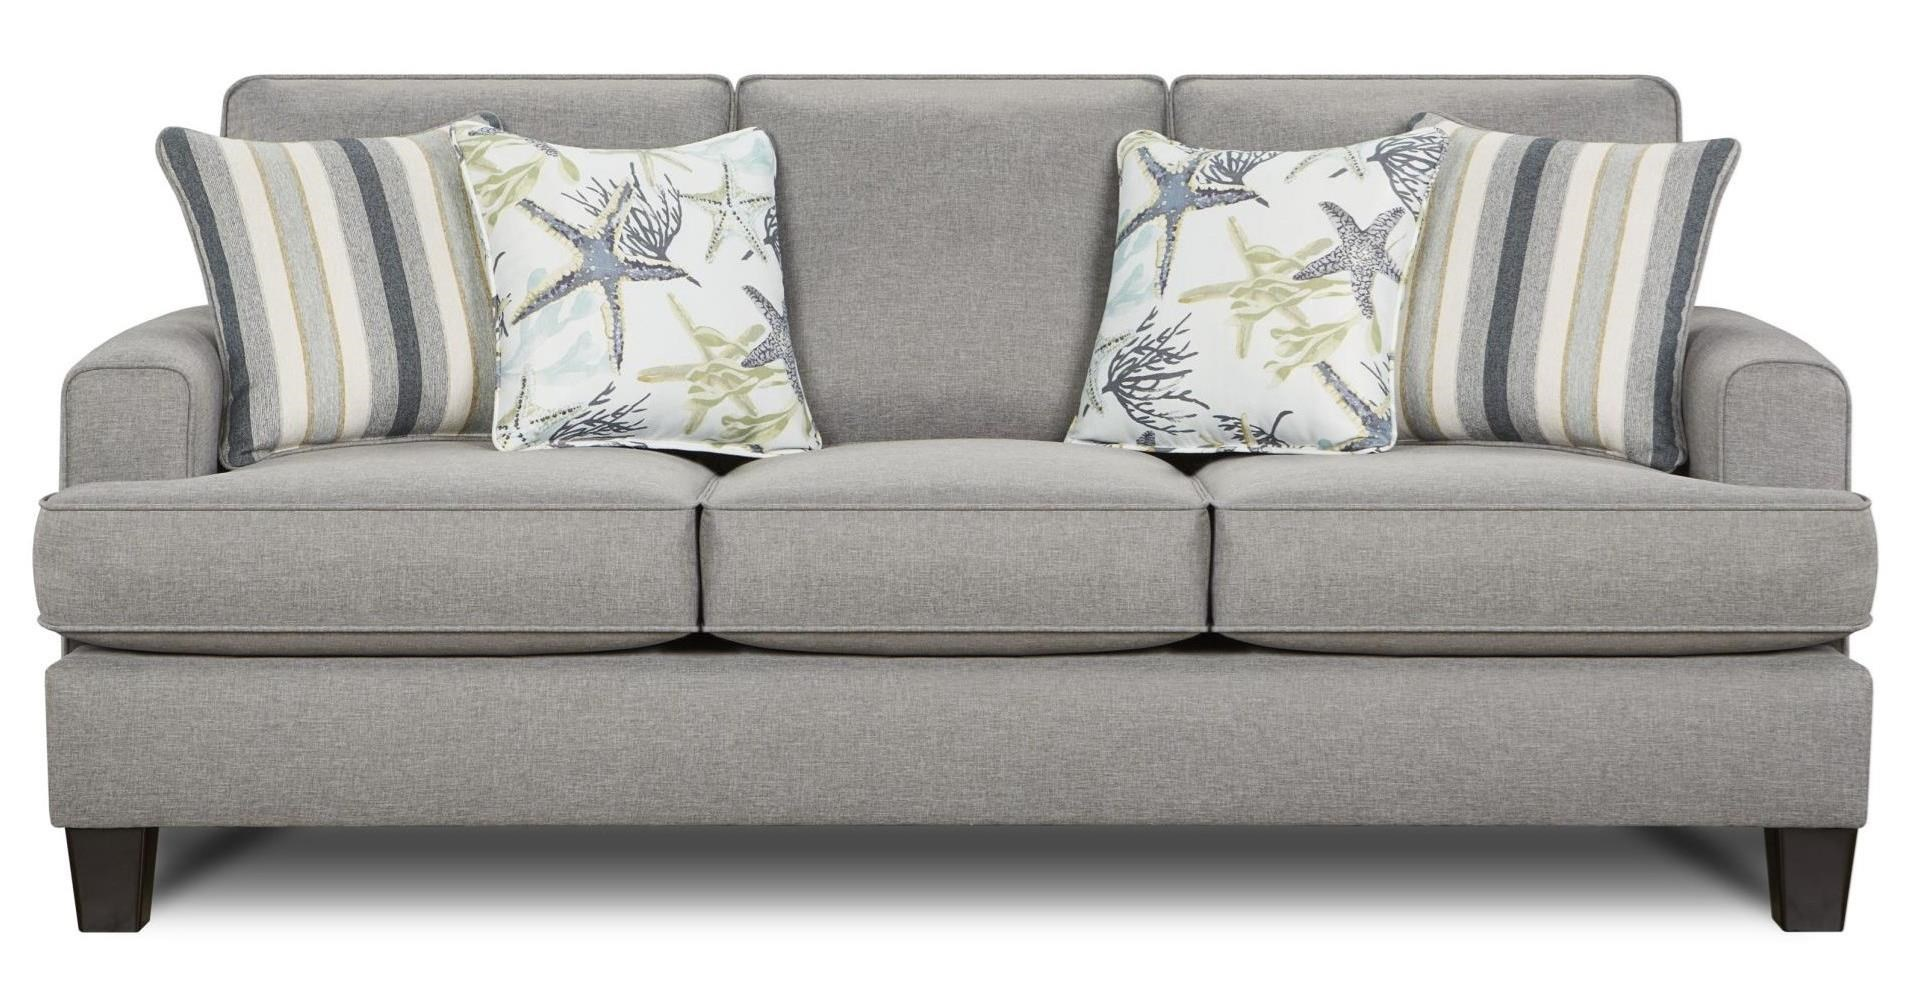 Contemporary Couch 2600 Contemporary Sofa With Small Track Arms By Fusion Furniture At Lindy S Furniture Company